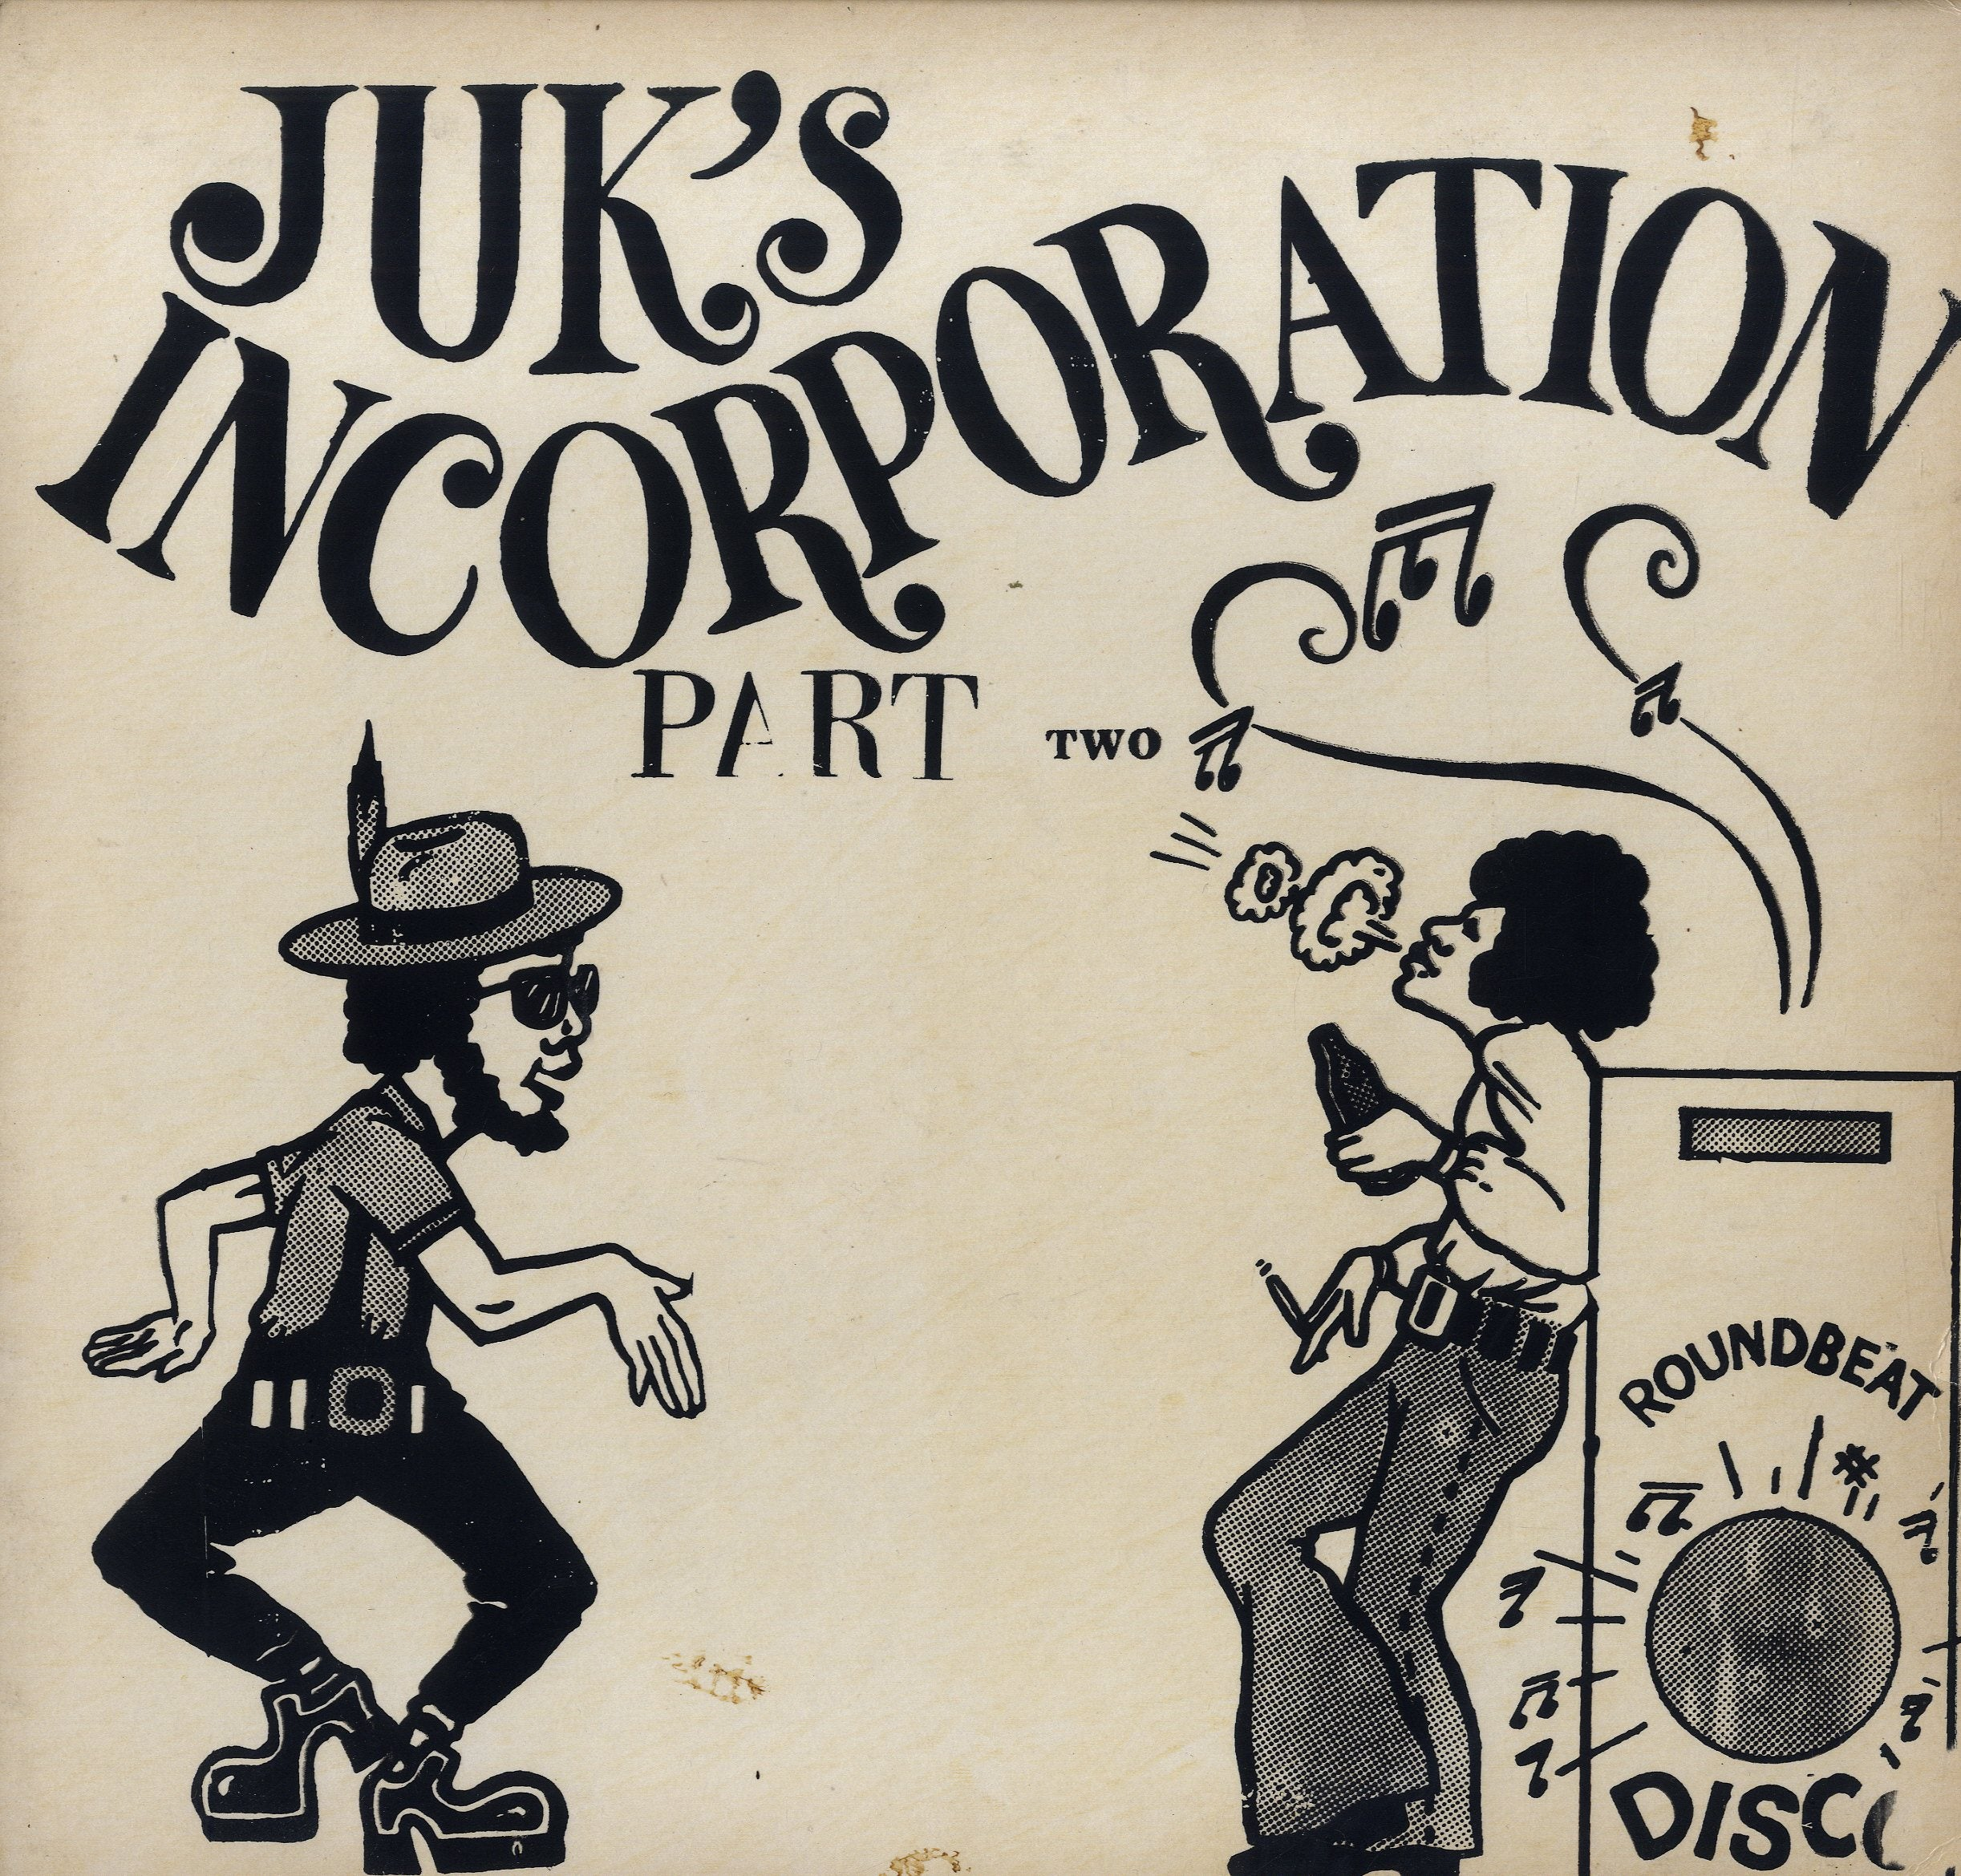 DUB SPECIALIST [Juk's Incorporatrion Part Two]